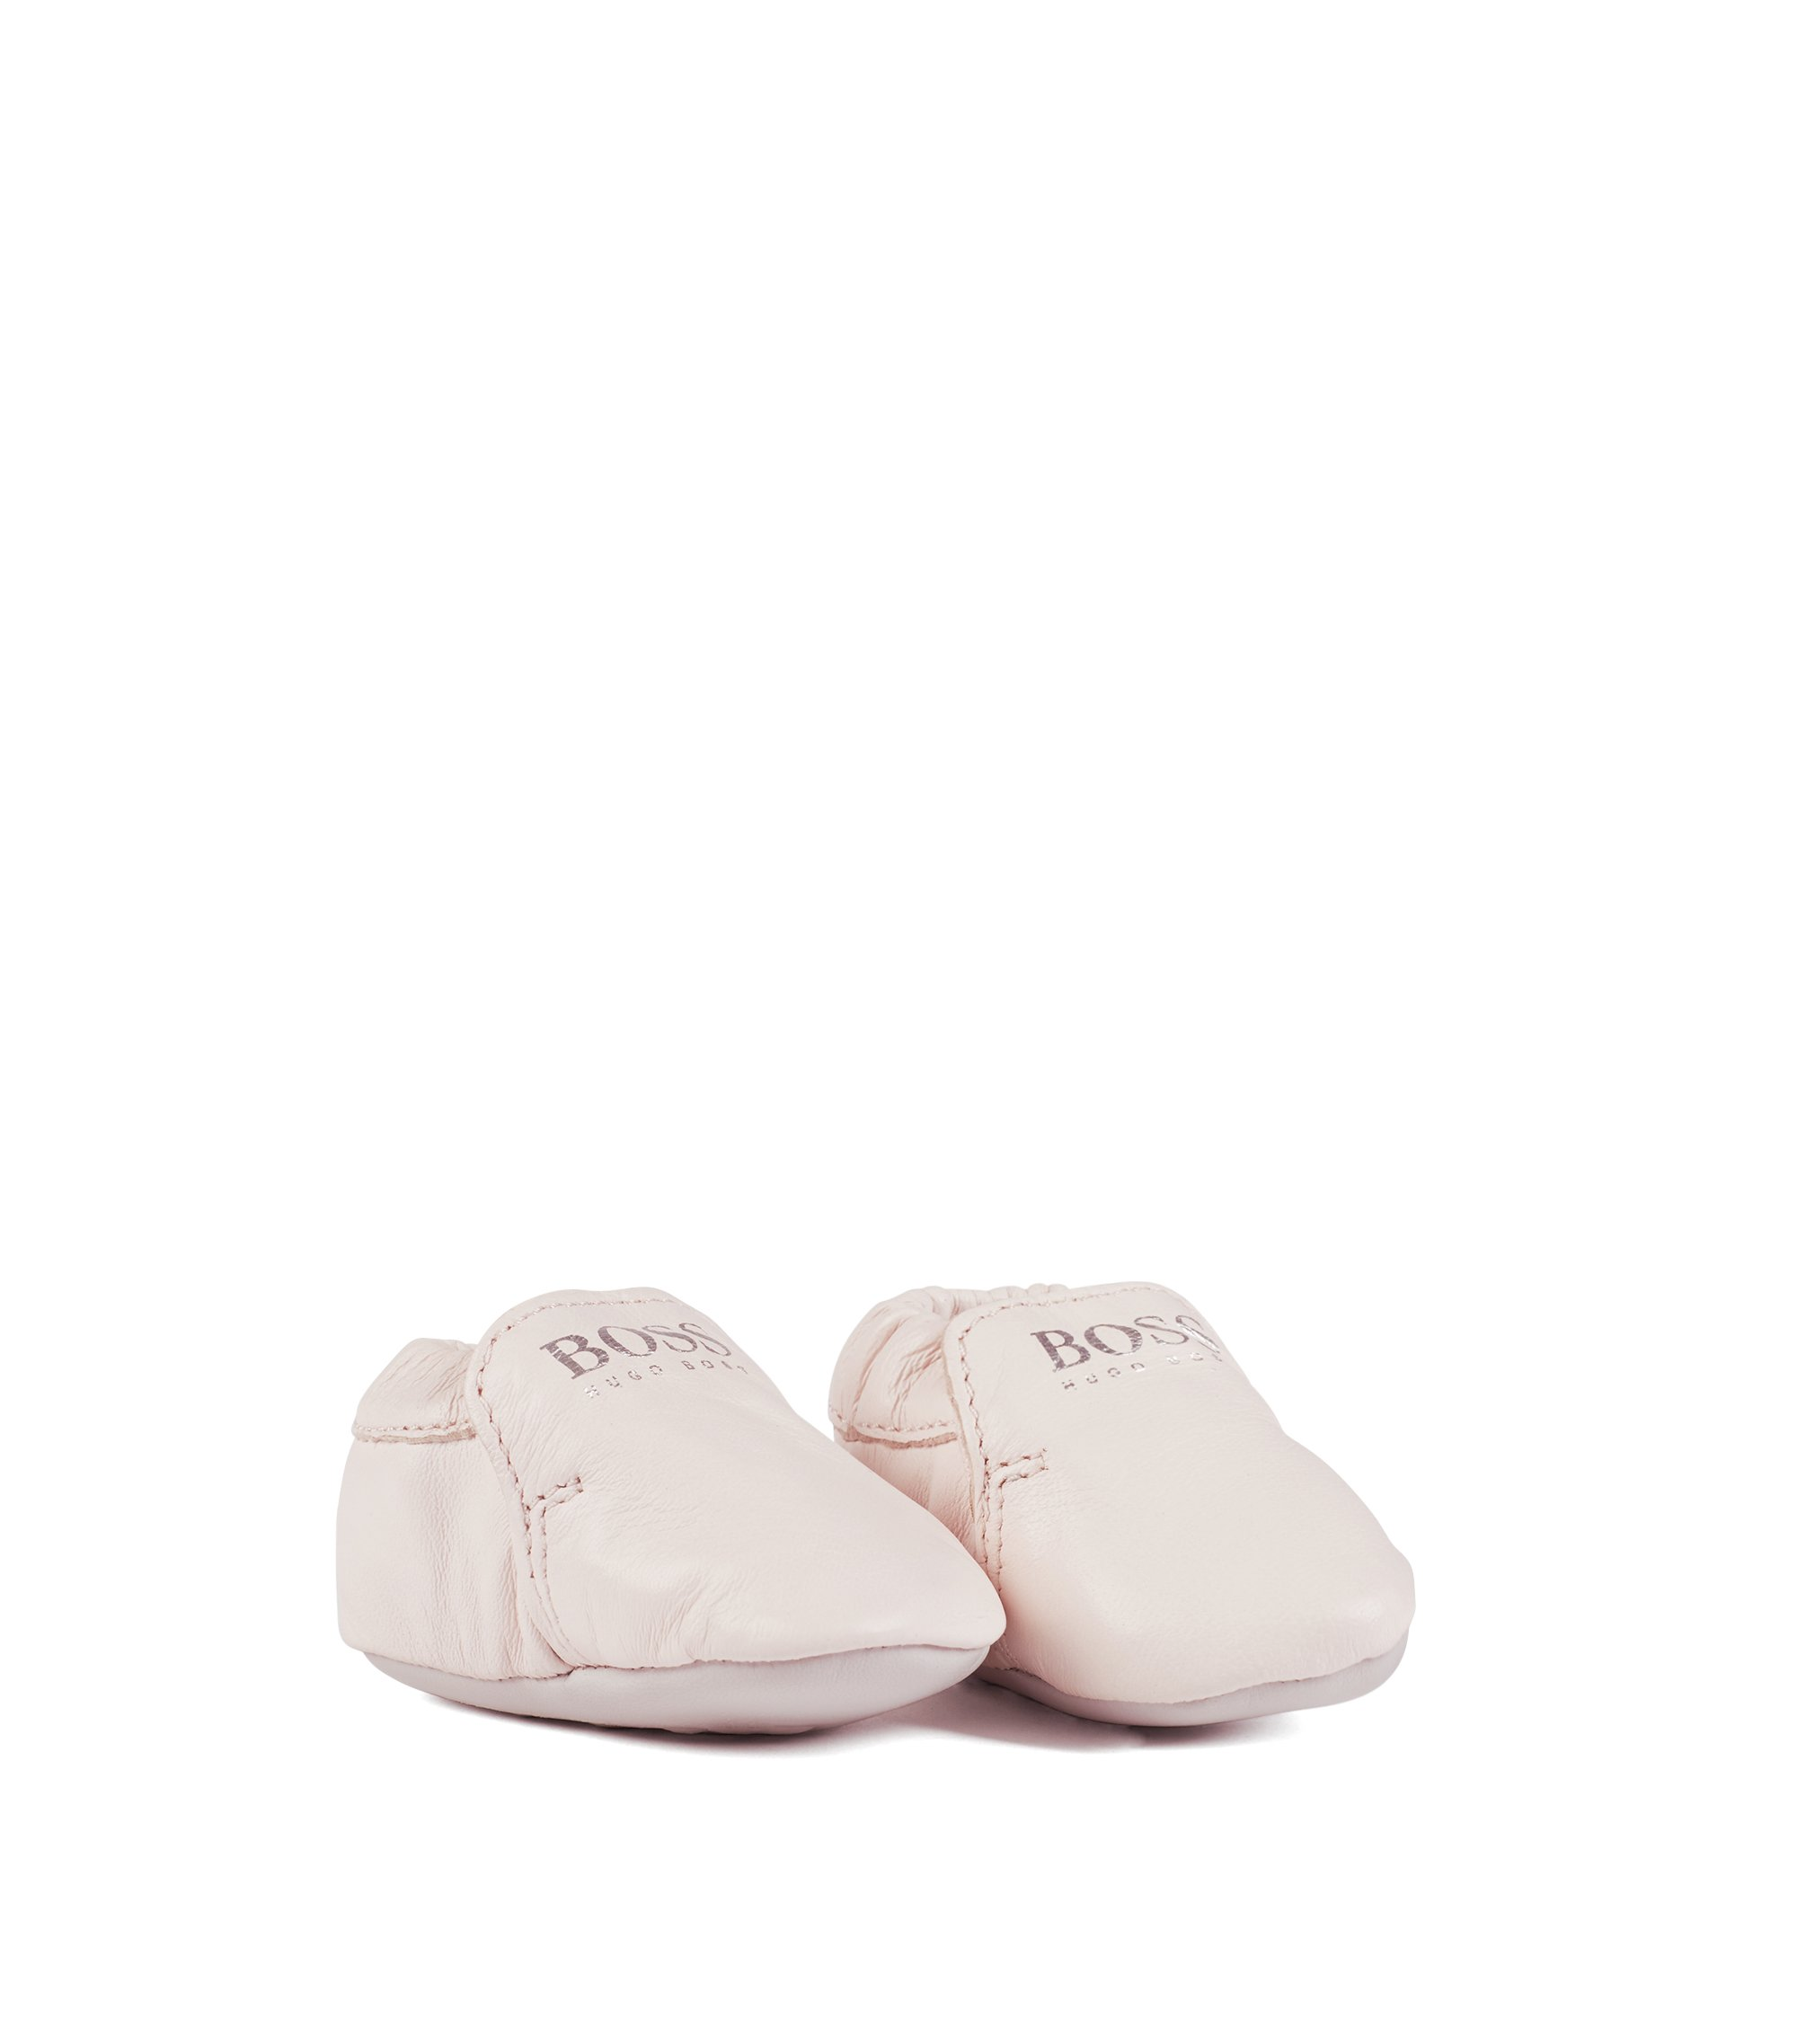 Baby girl leather booties with logo detail, light pink